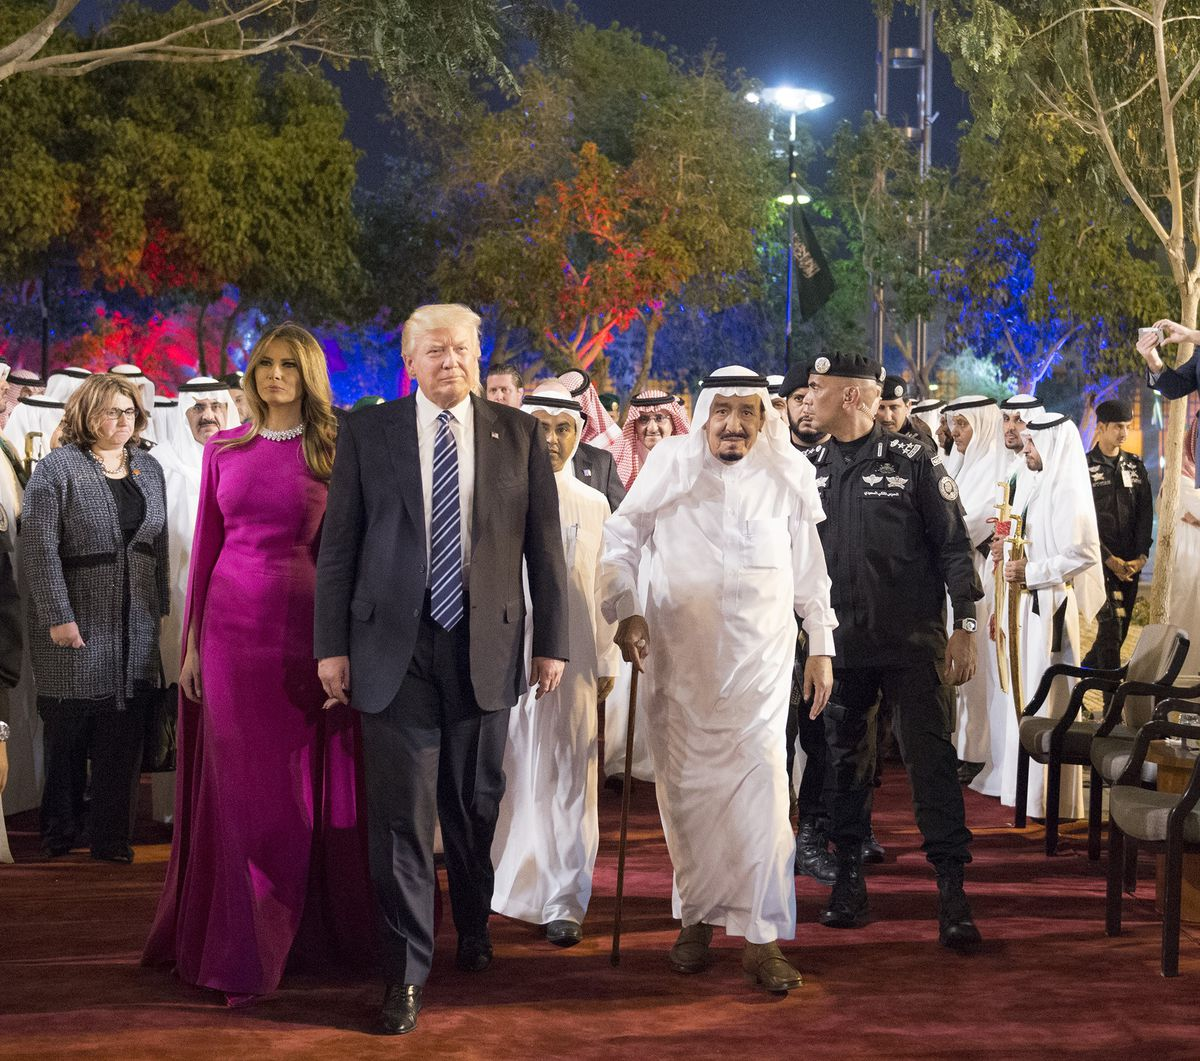 Secretary of Commerce Wilbur Ross cited the lack of protests in Saudia Arabia as a sign of President Trump's popularity. There may have been other reasons.